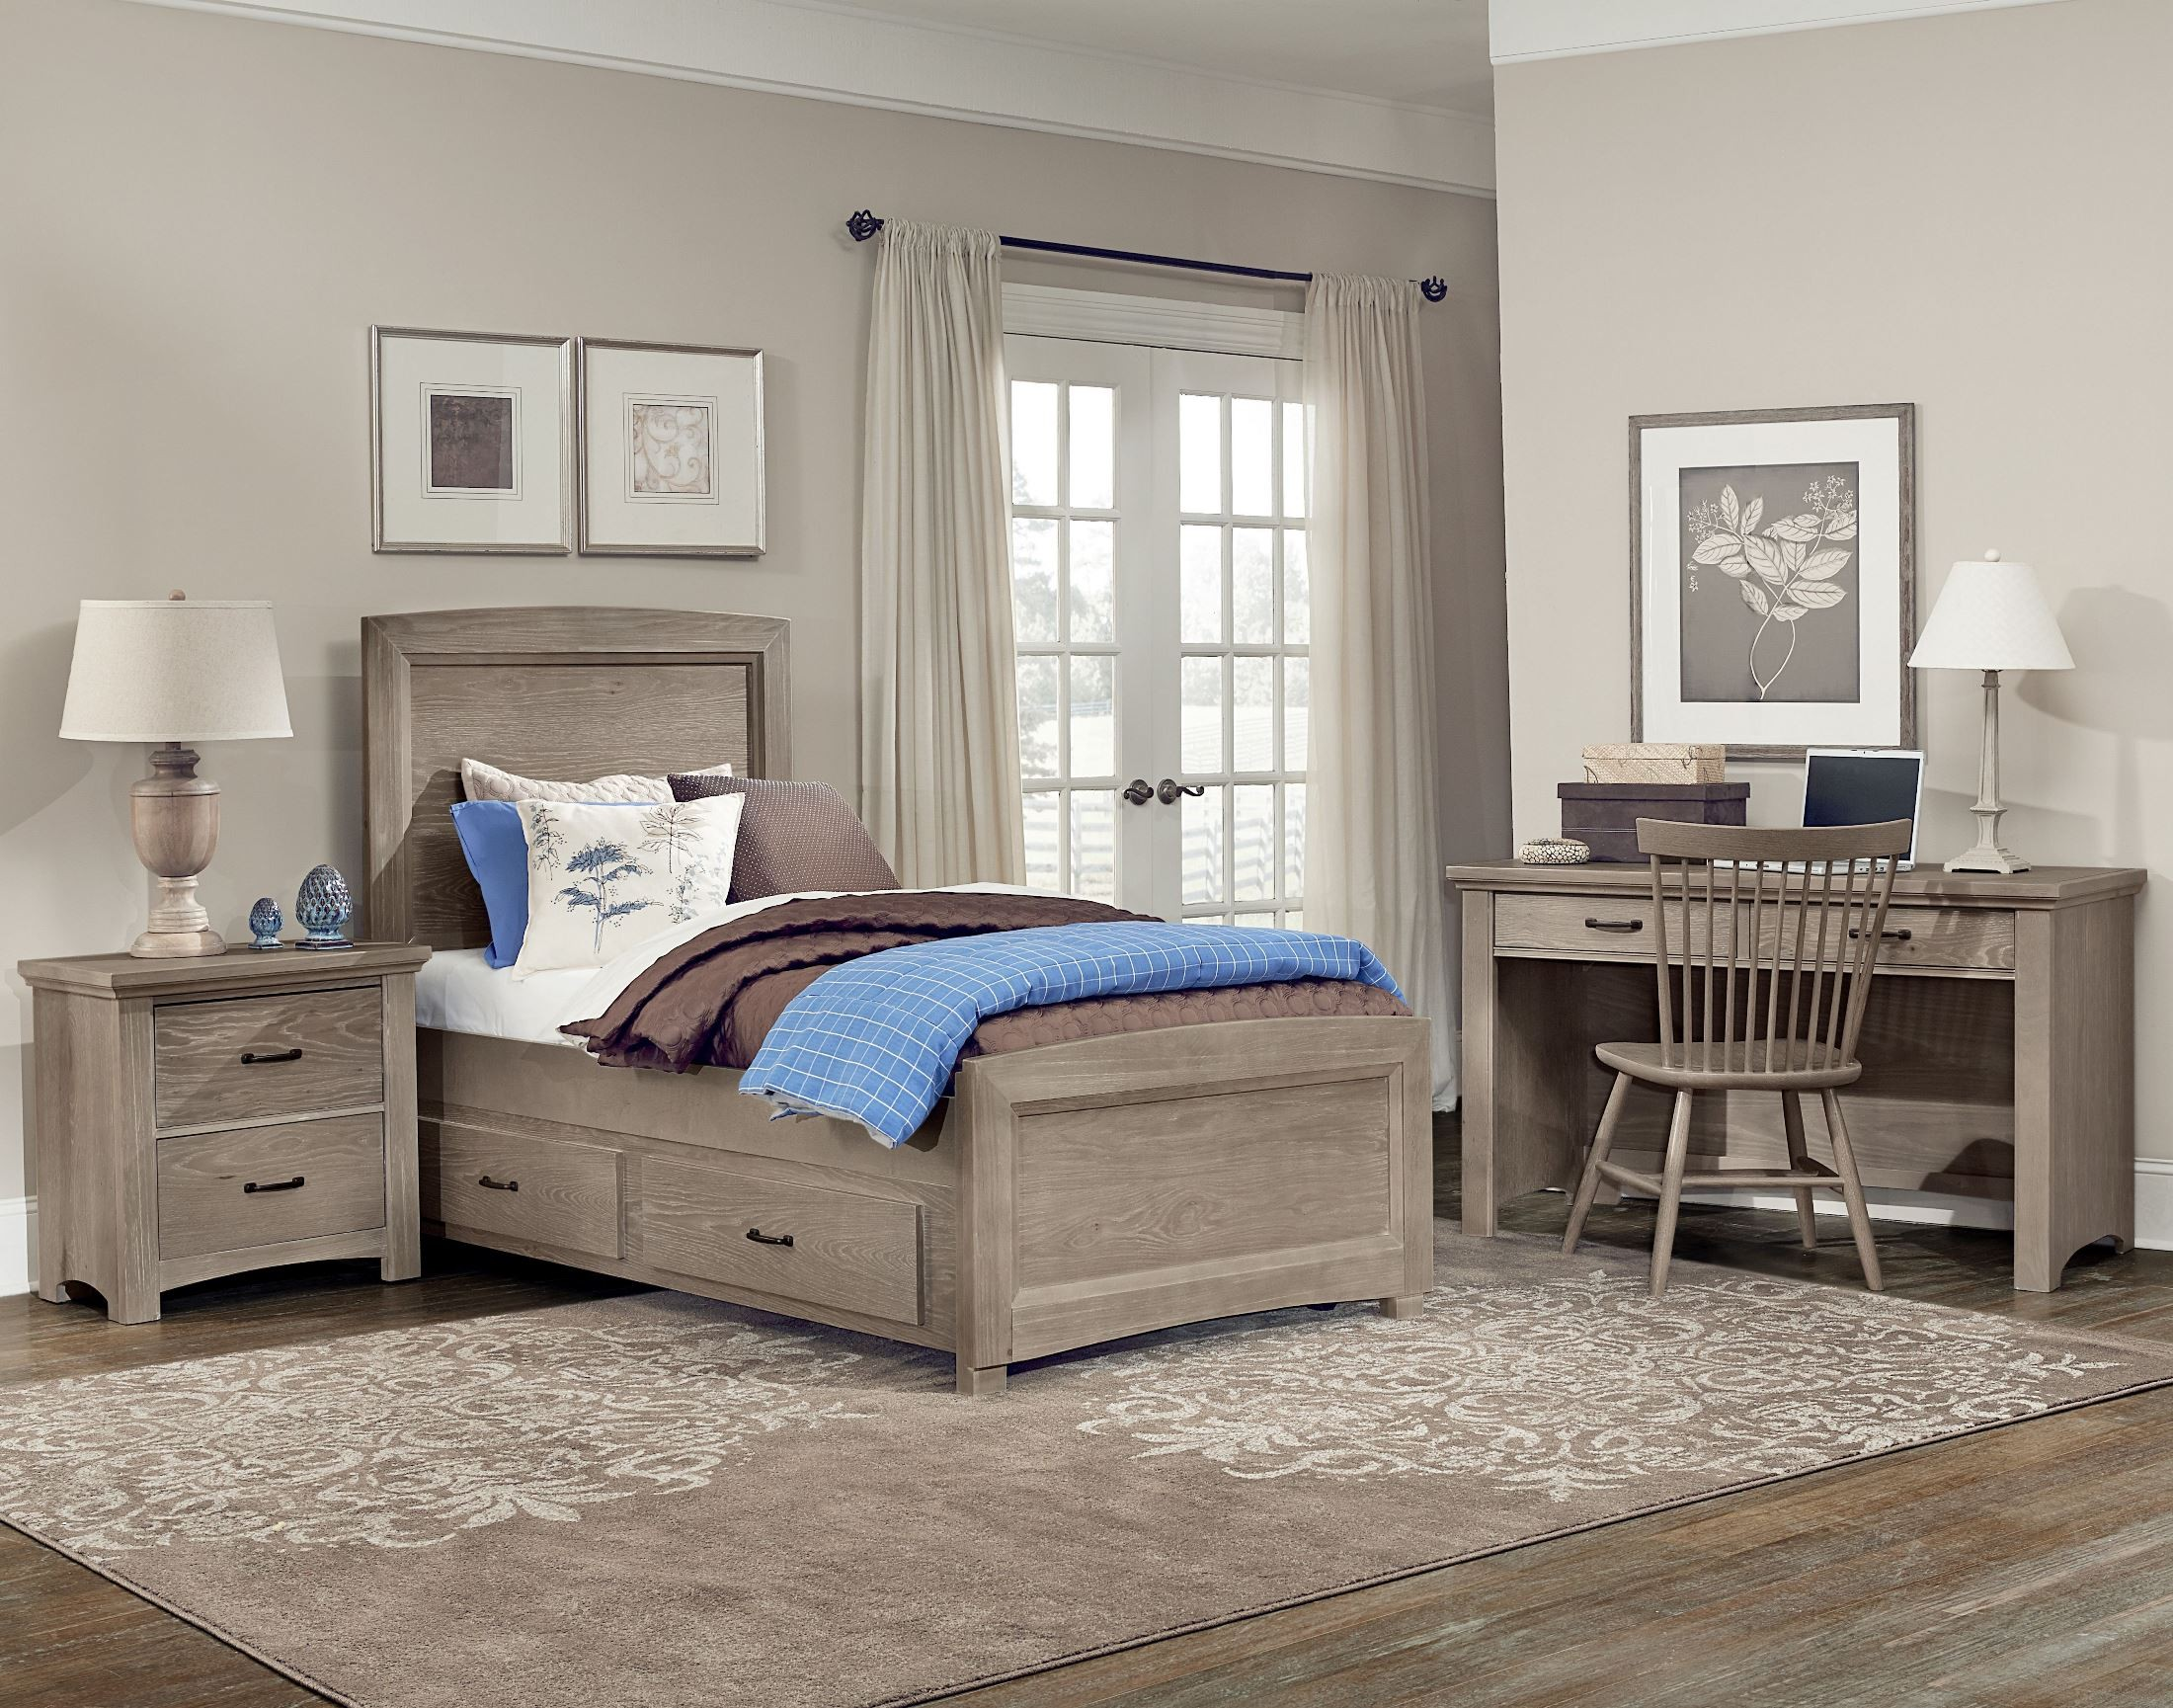 Details About White 3 Piece Storage Drawers Twin Bed Box: Transitions Driftwood Oak Youth One Side Storage Panel